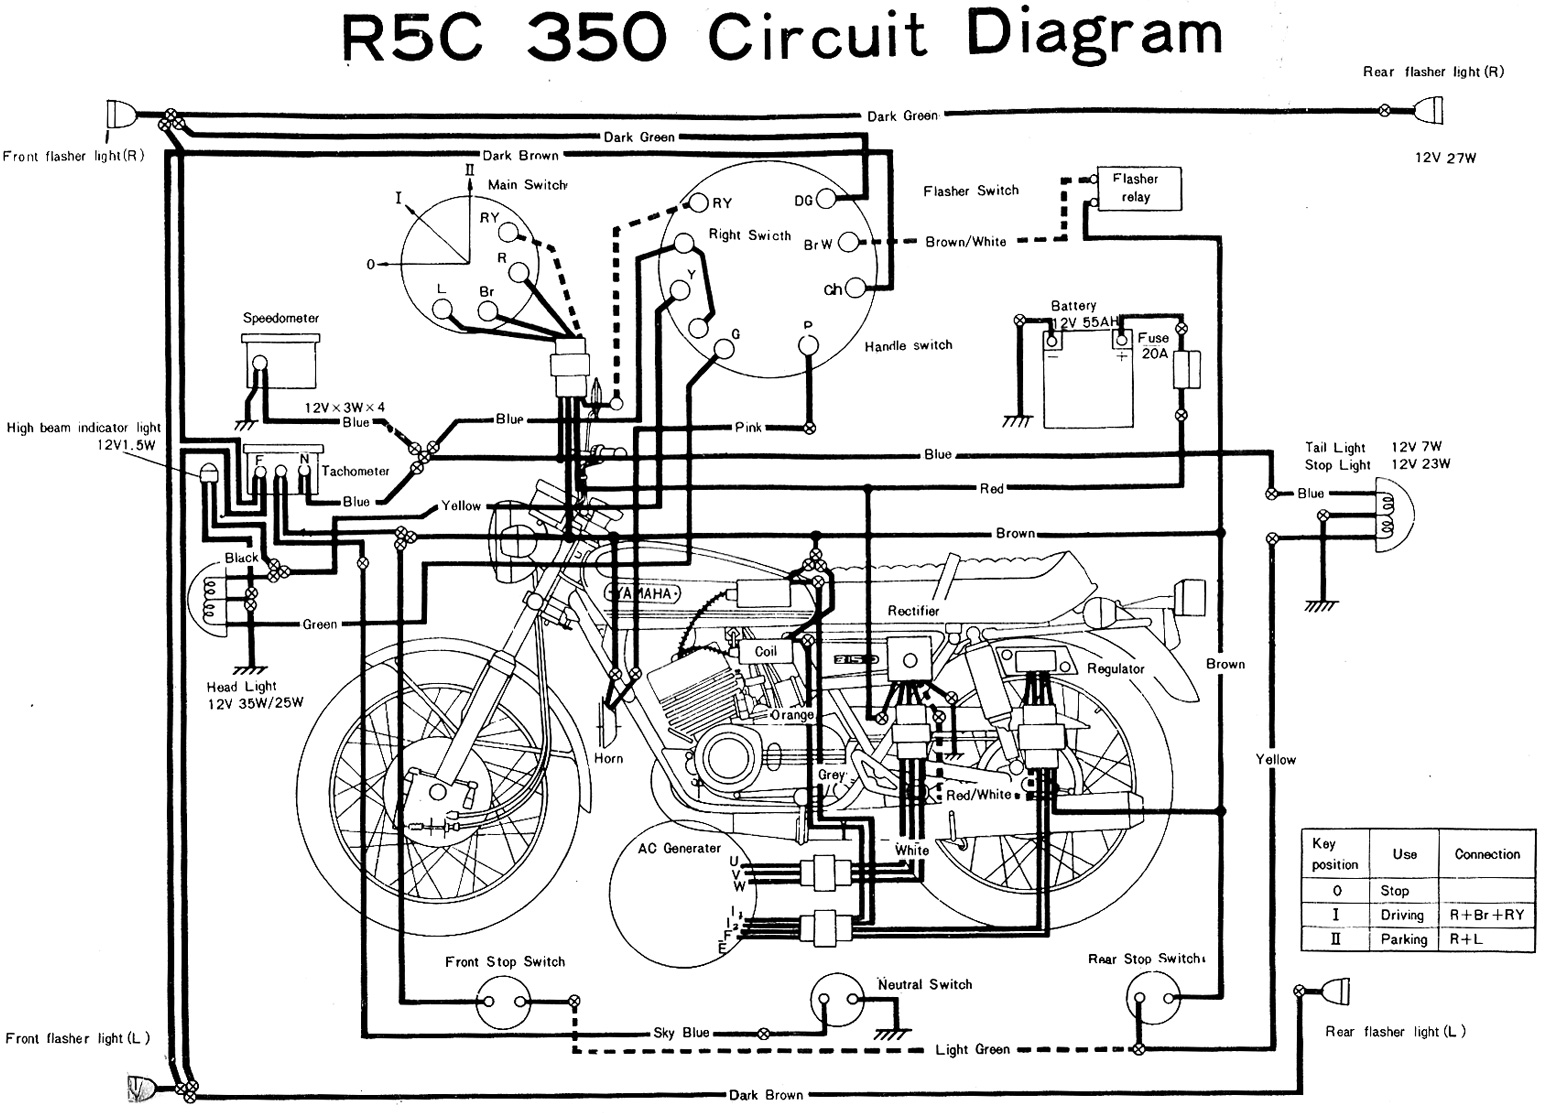 Motorcycle Electrical Wiring Diagram Thread Wiring Diagram Motorcycle Turn Signal Wiring Diagram Diagram Of Motorcycle 2-Way Switch Wiring Diagram At IT-Energia.com